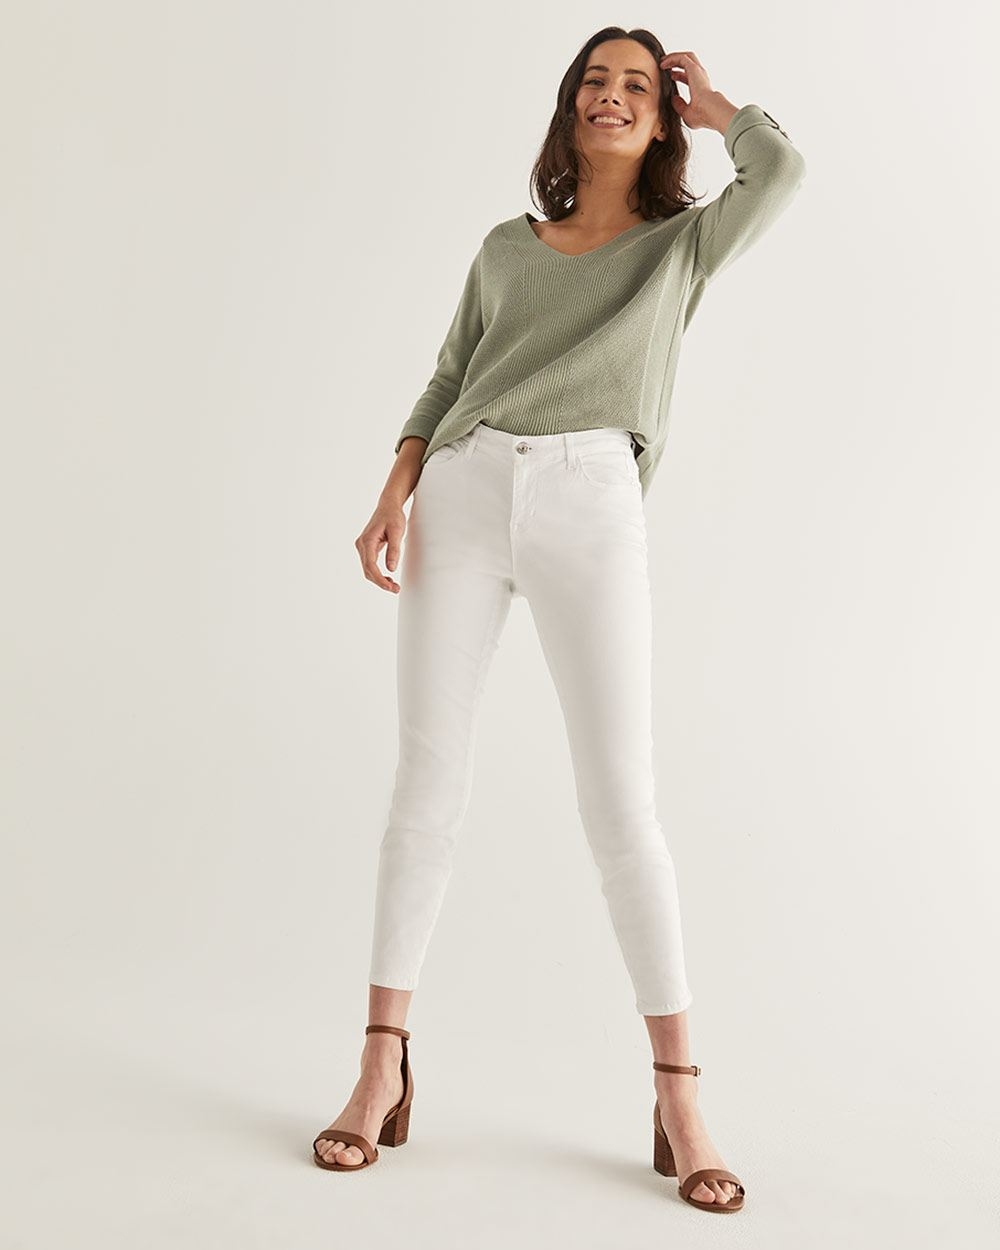 White Skinny Ankle Jeans - Petite